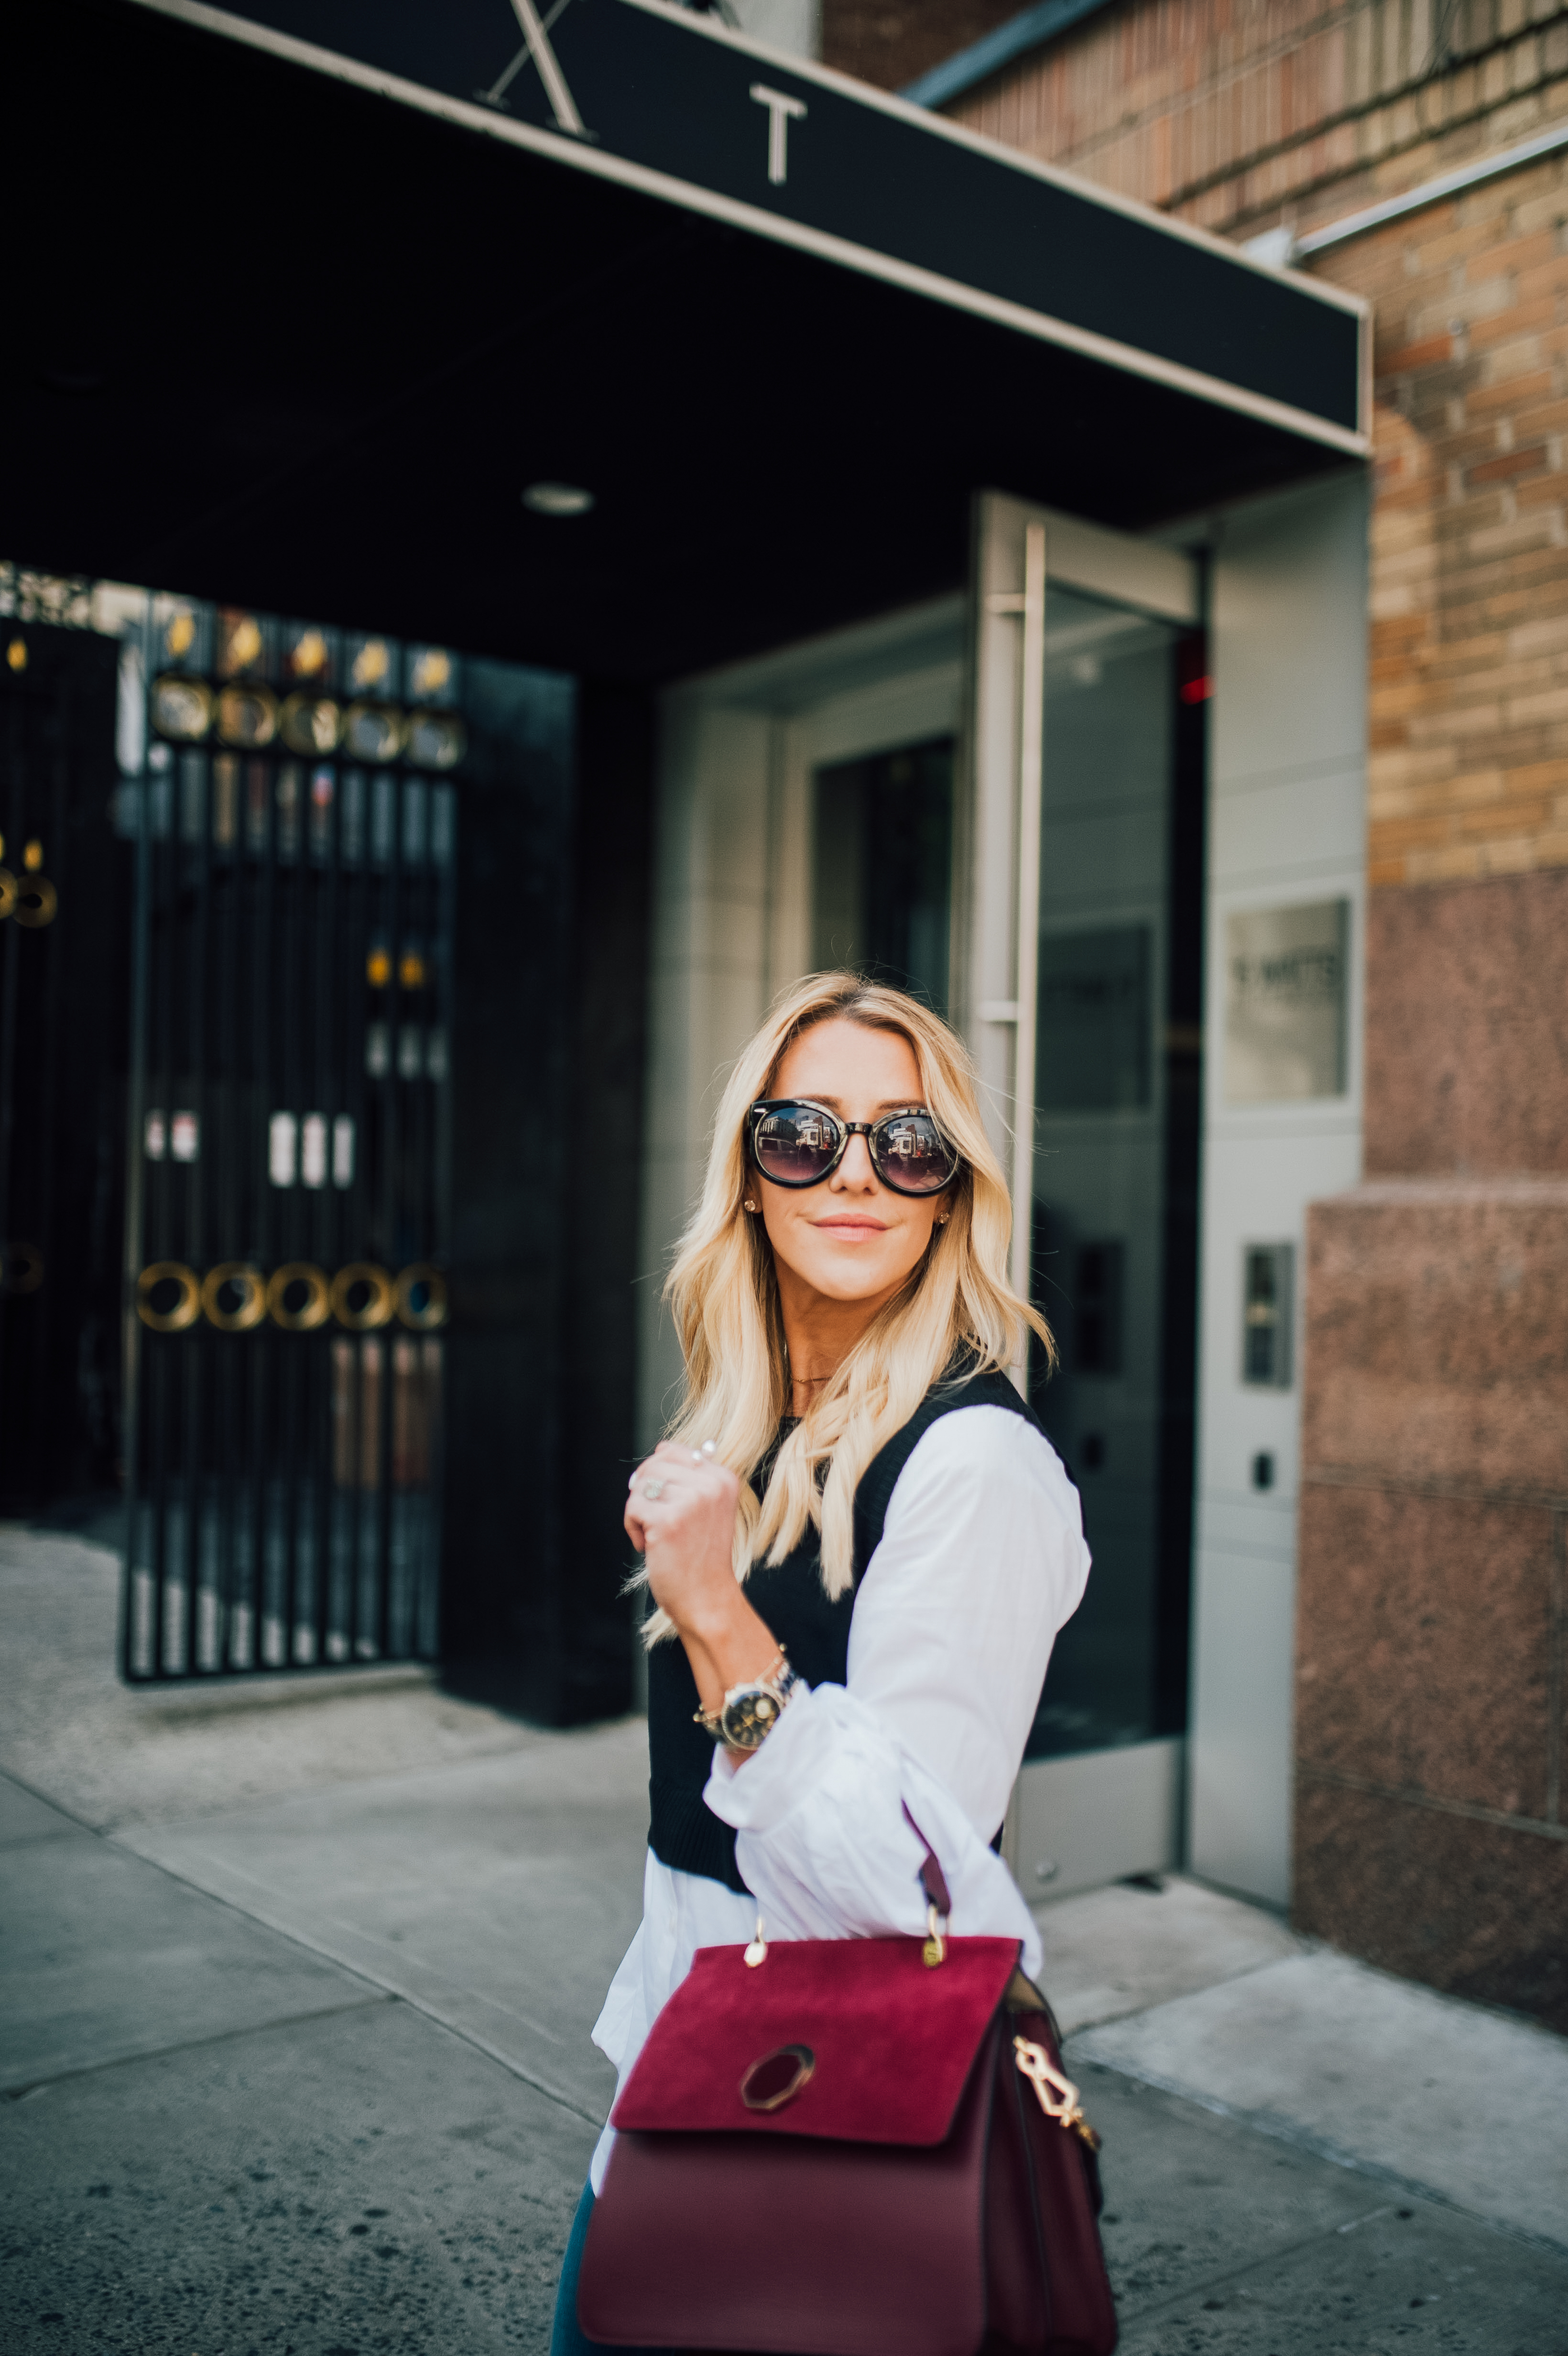 ... Fall Sweater - On Sale! by San Francisco fashion blogger For the Love  ... f48d0ce20